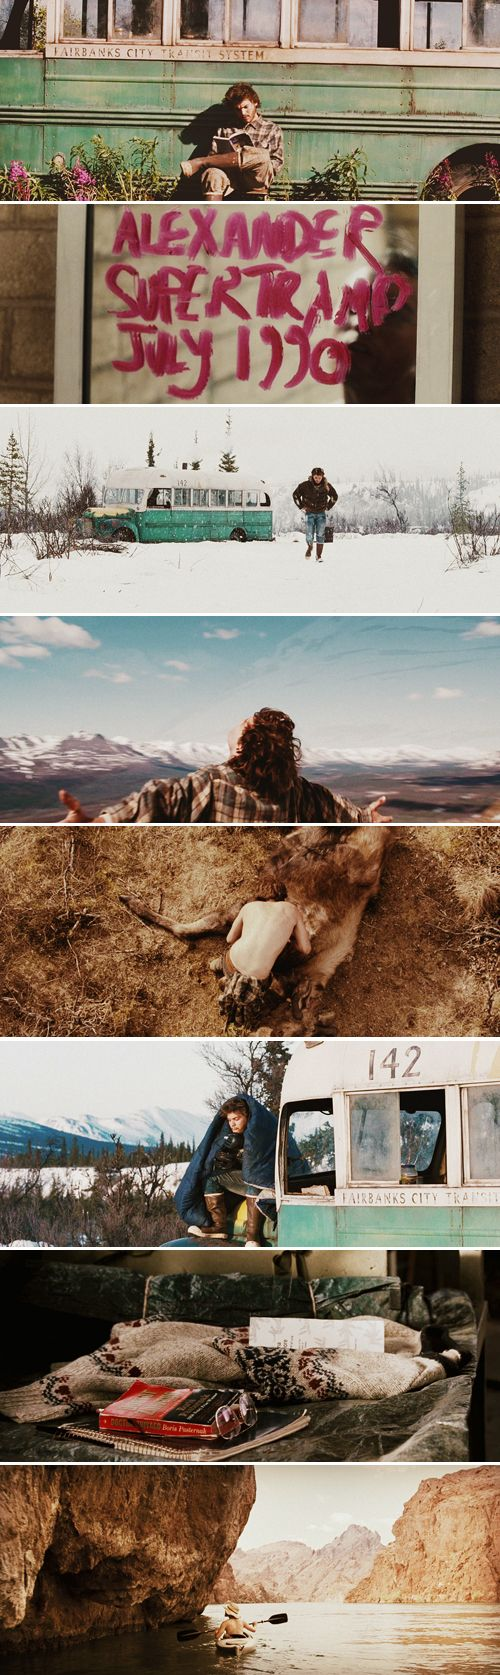 Into the wild (2007)  film stills, photography, colour, nature, happiness, love